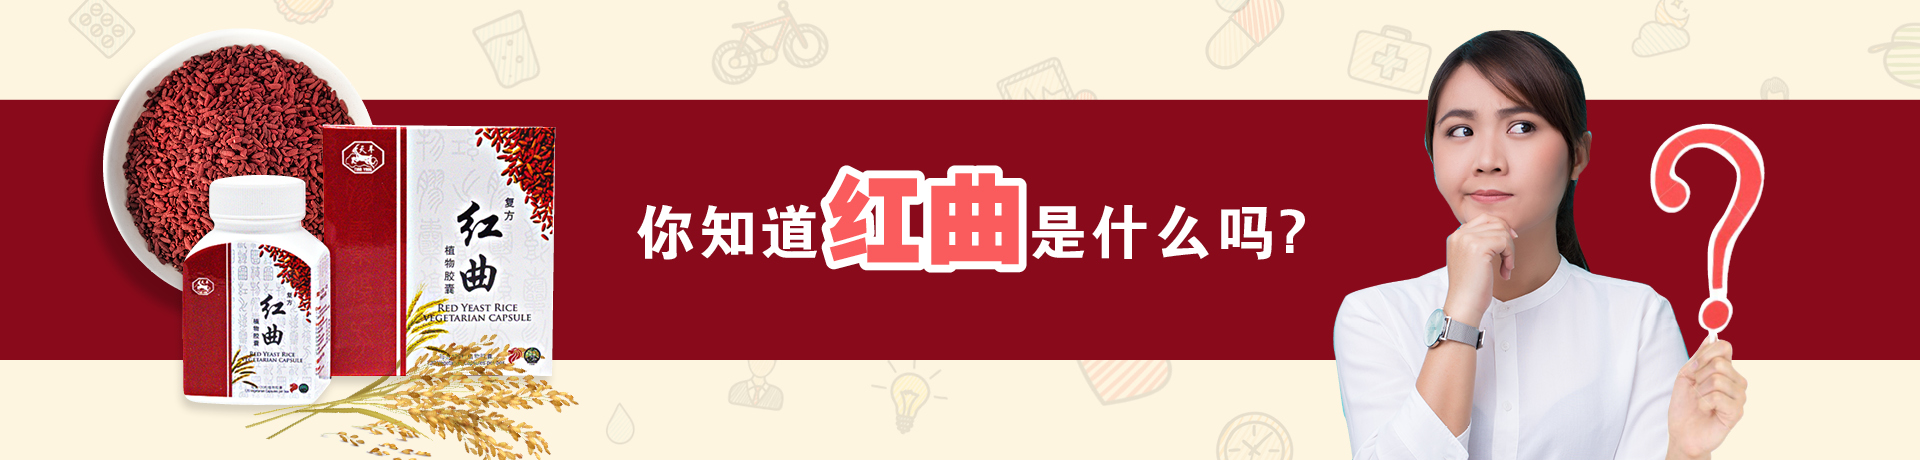 HHT_Sliding banner_red yeast_1920x460px_chi